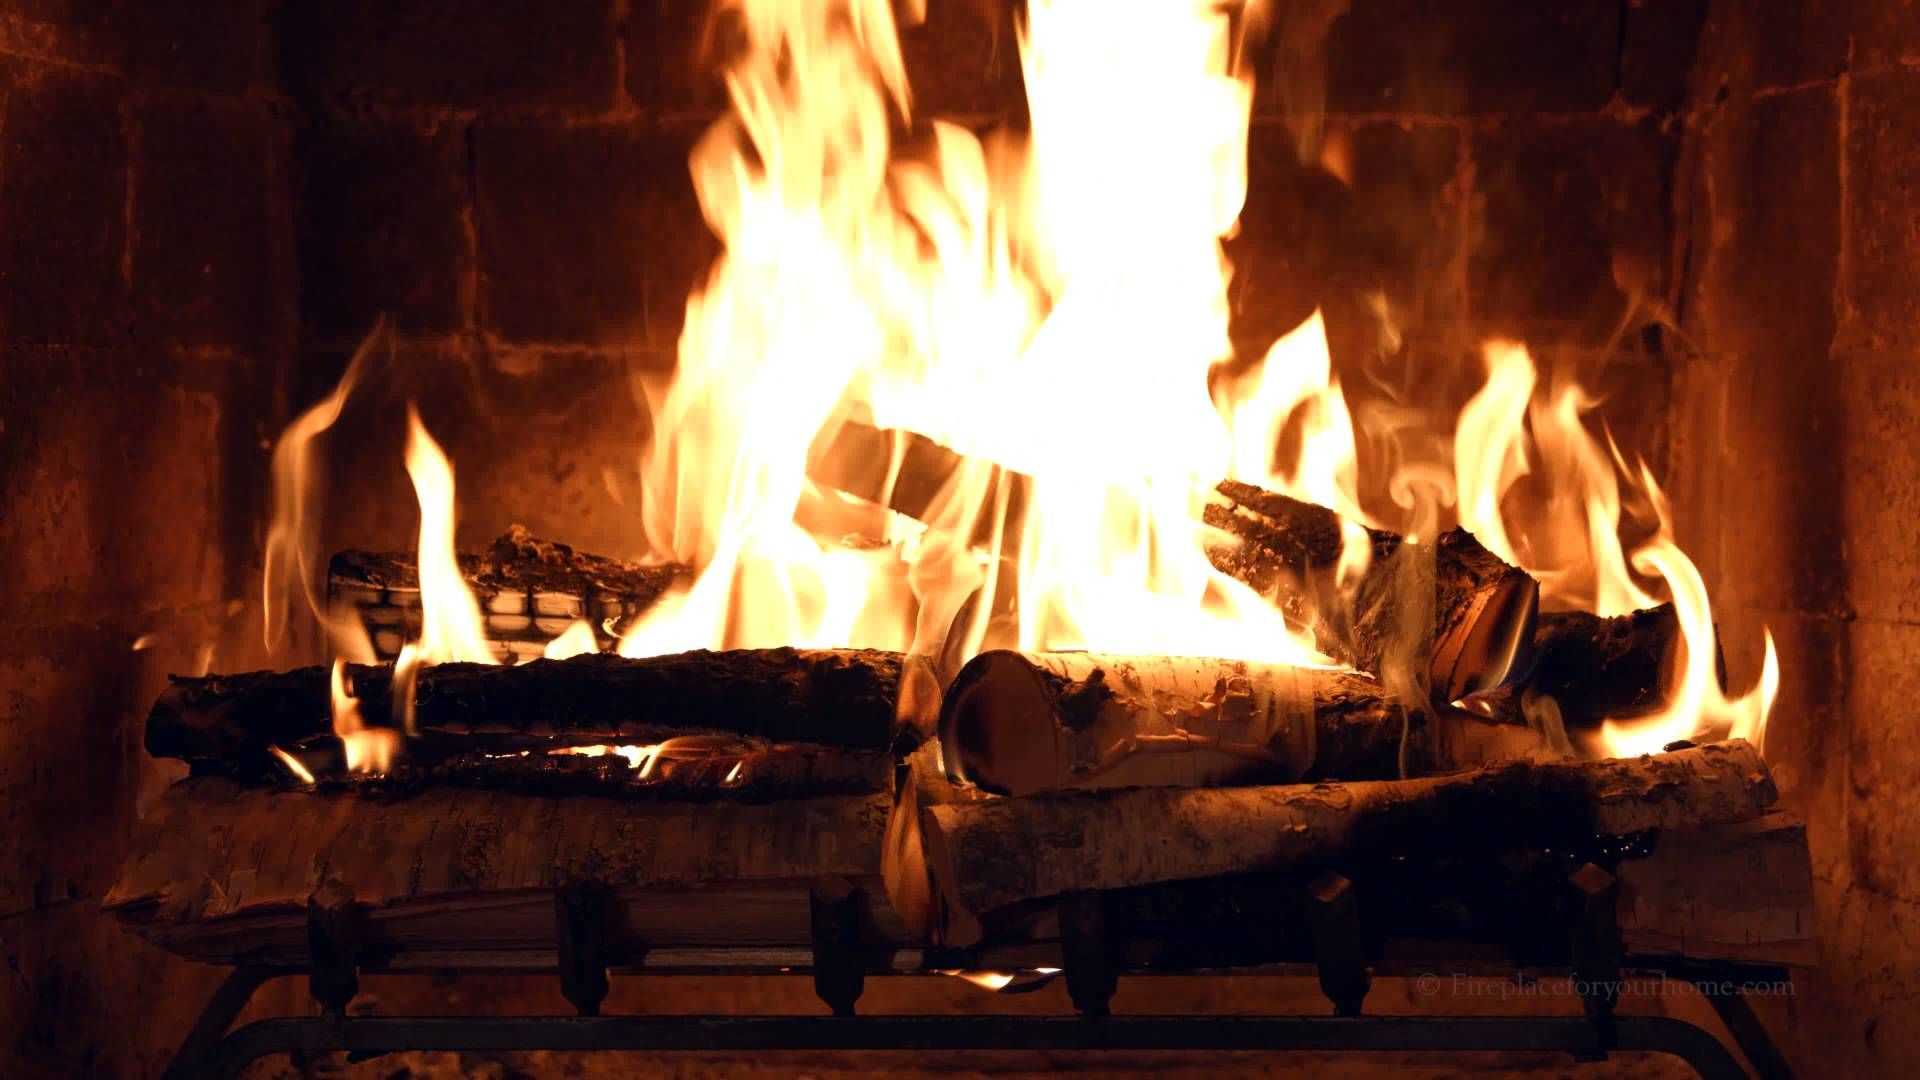 #1 Best 4K Fireplace on Youtube OFFICIAL - Yule Log - Fireplace for your...